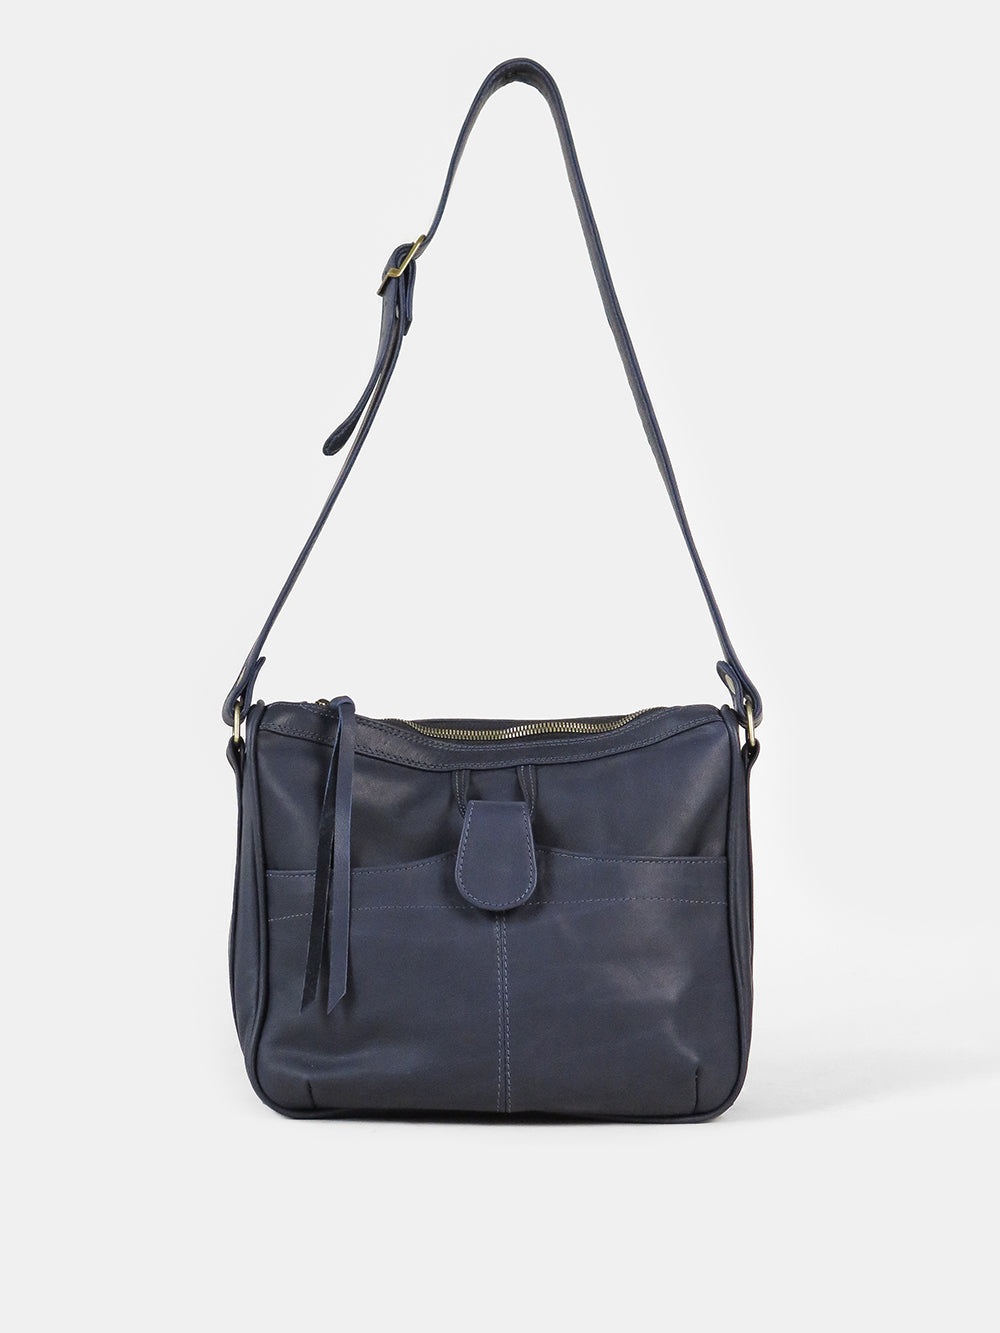 leather shoulder bag in navy